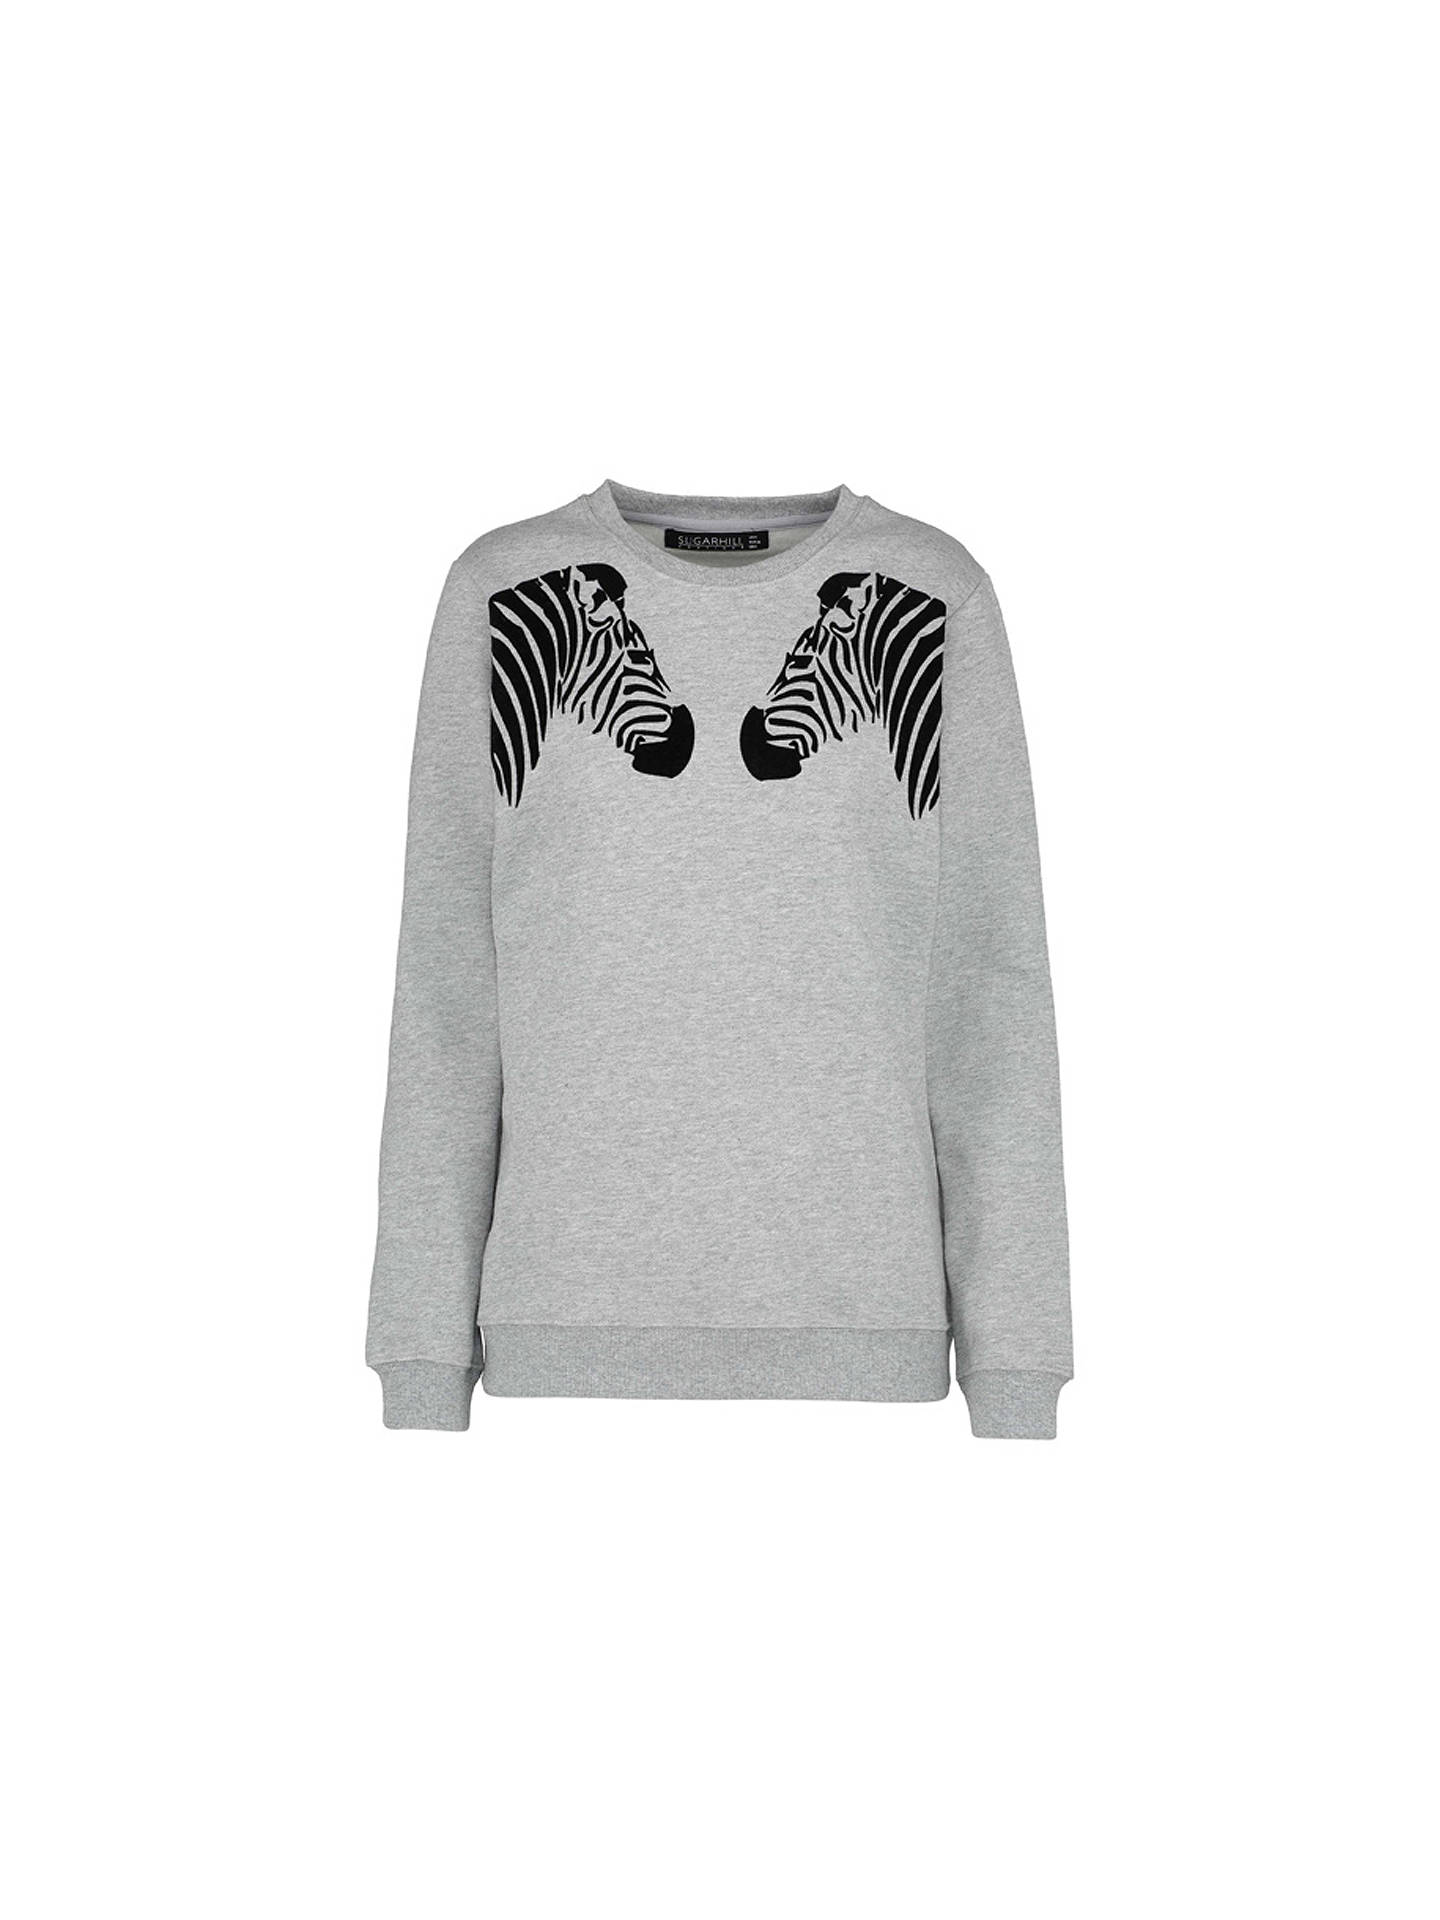 Buy Sugarhill Brighton Alanis Zebra Sweatshirt, Grey Marl, 8 Online at johnlewis.com